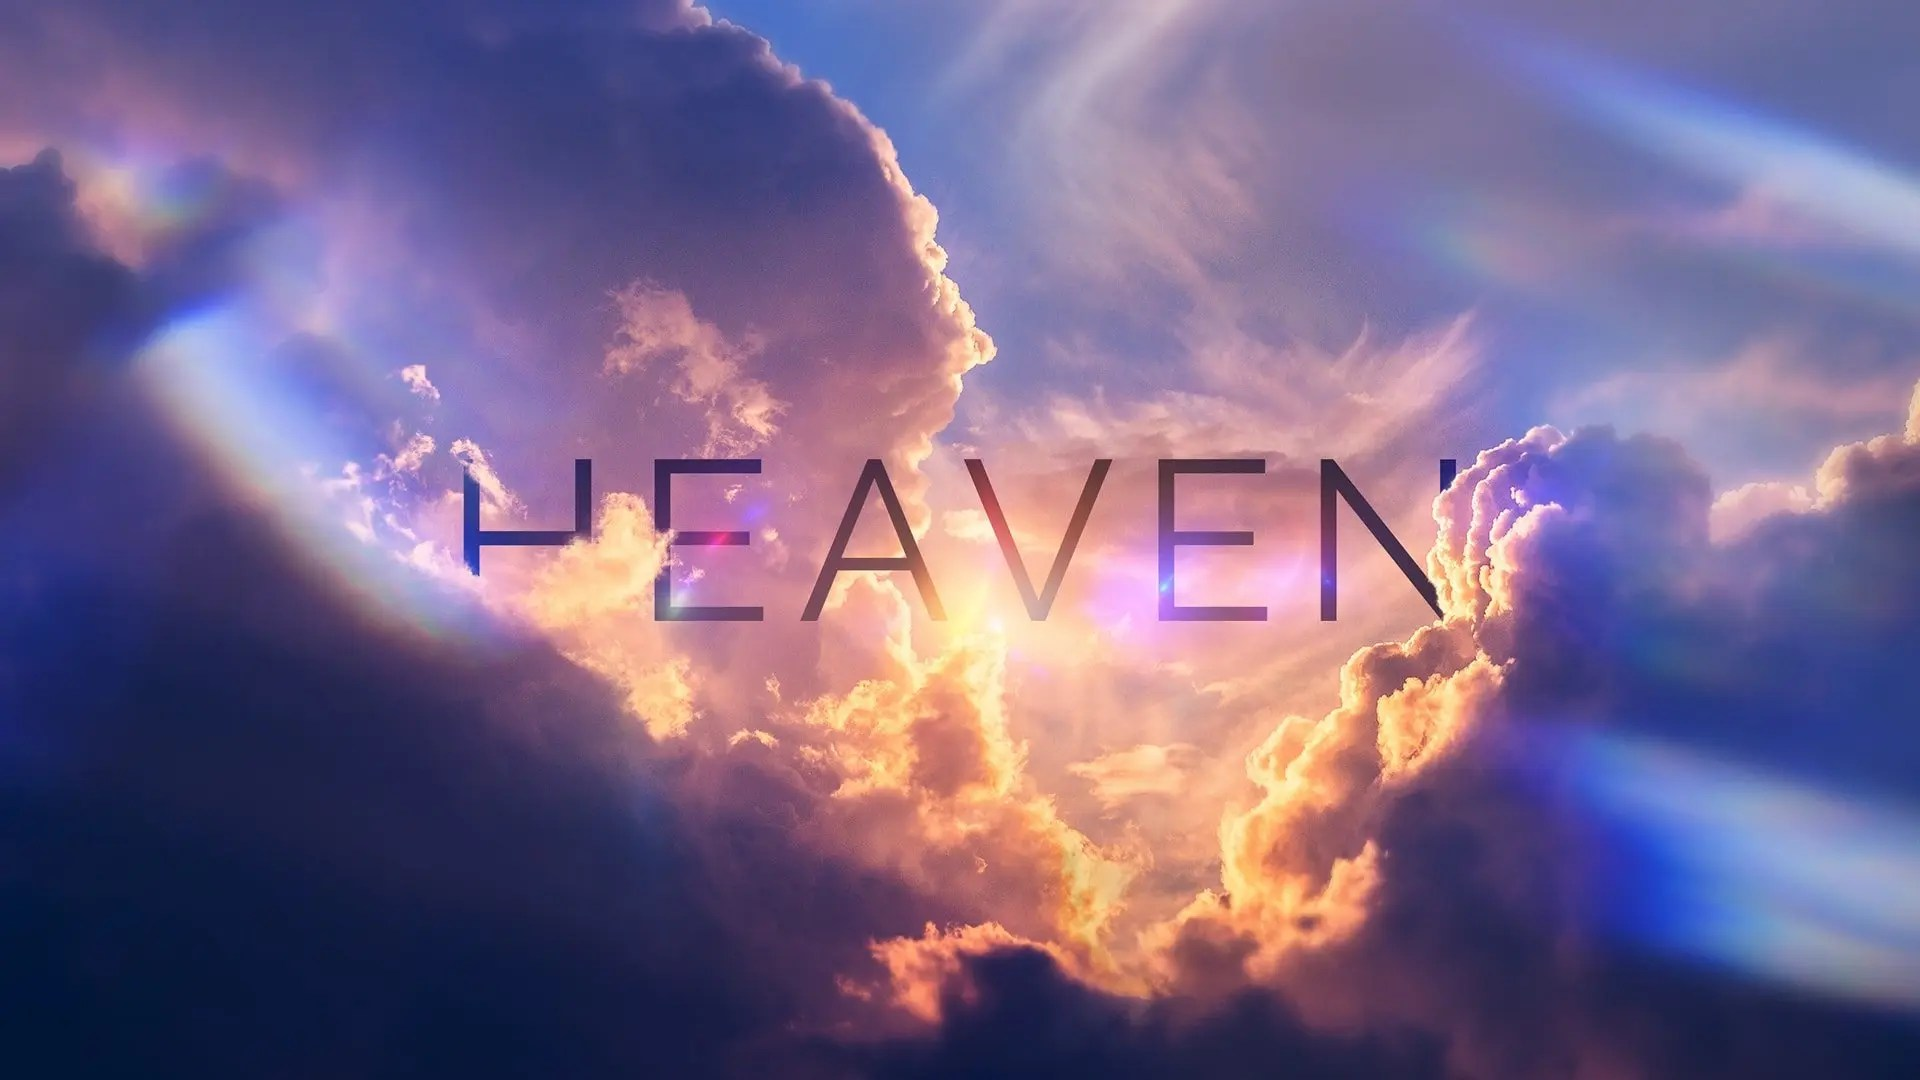 What Is Heaven Like Life Church Calvert